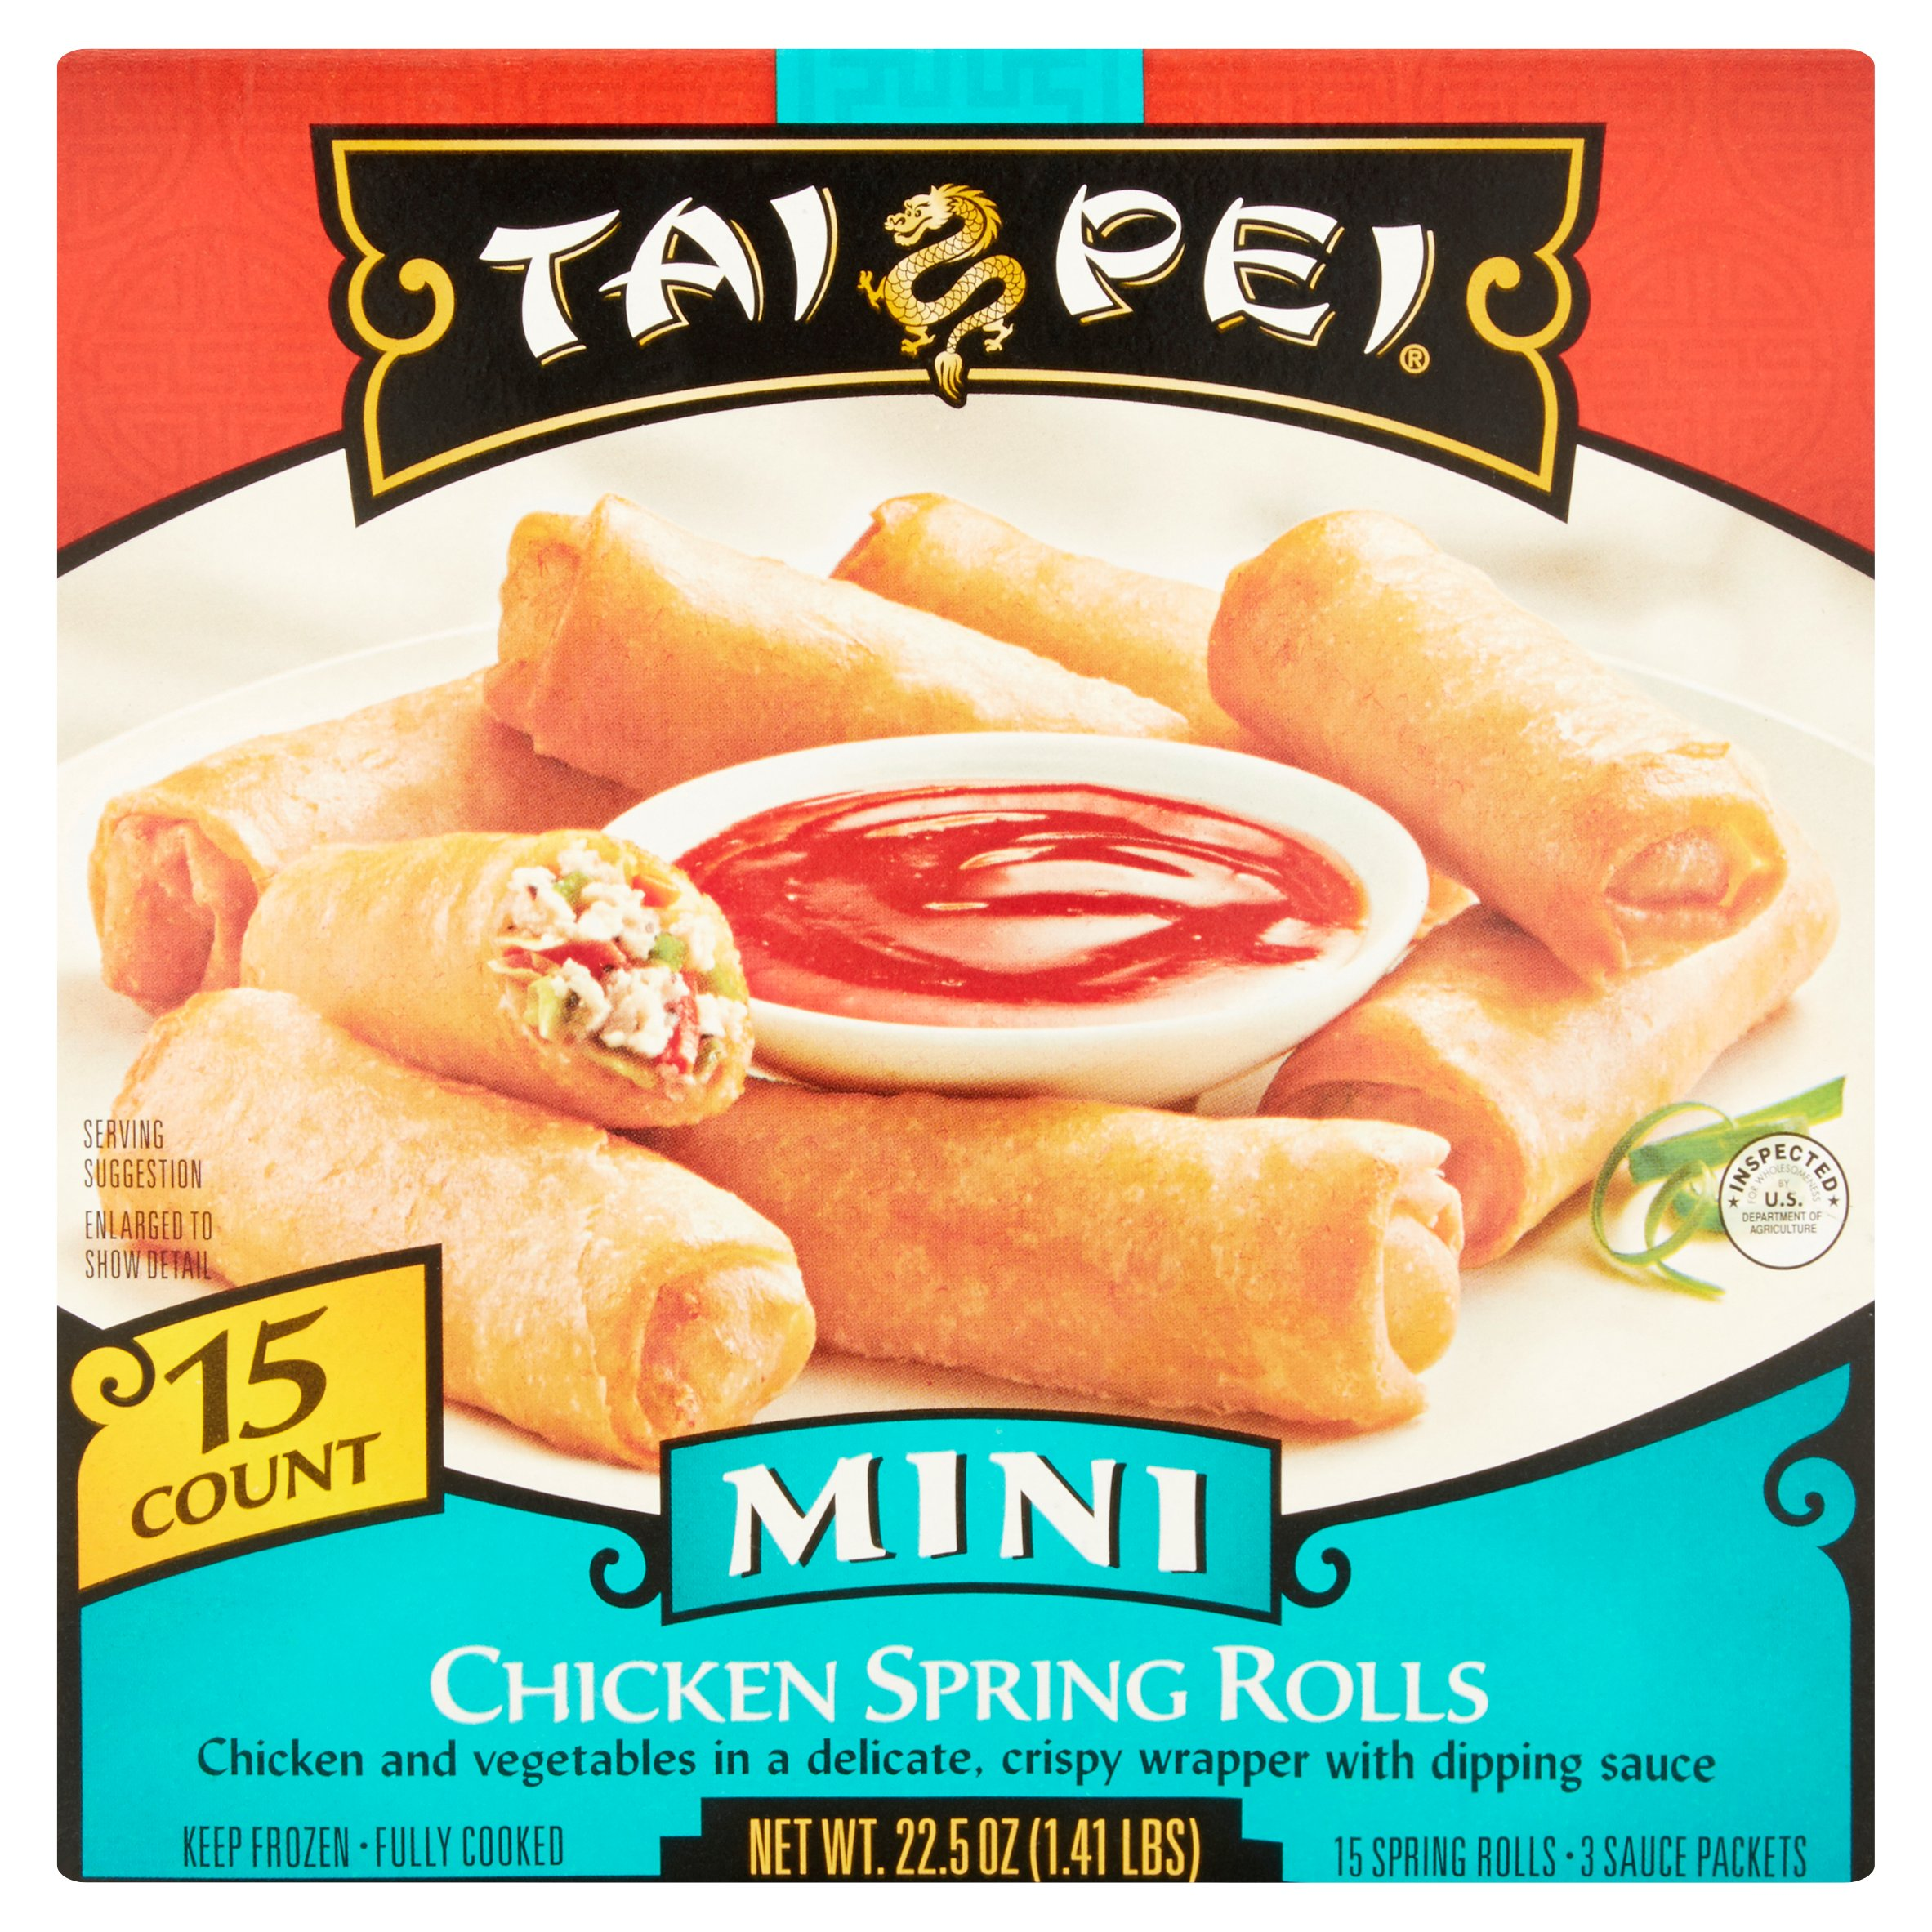 Tai Pei Mini Chicken Spring Rolls with 3 Sauce Packets, 15 count, 22.5 oz